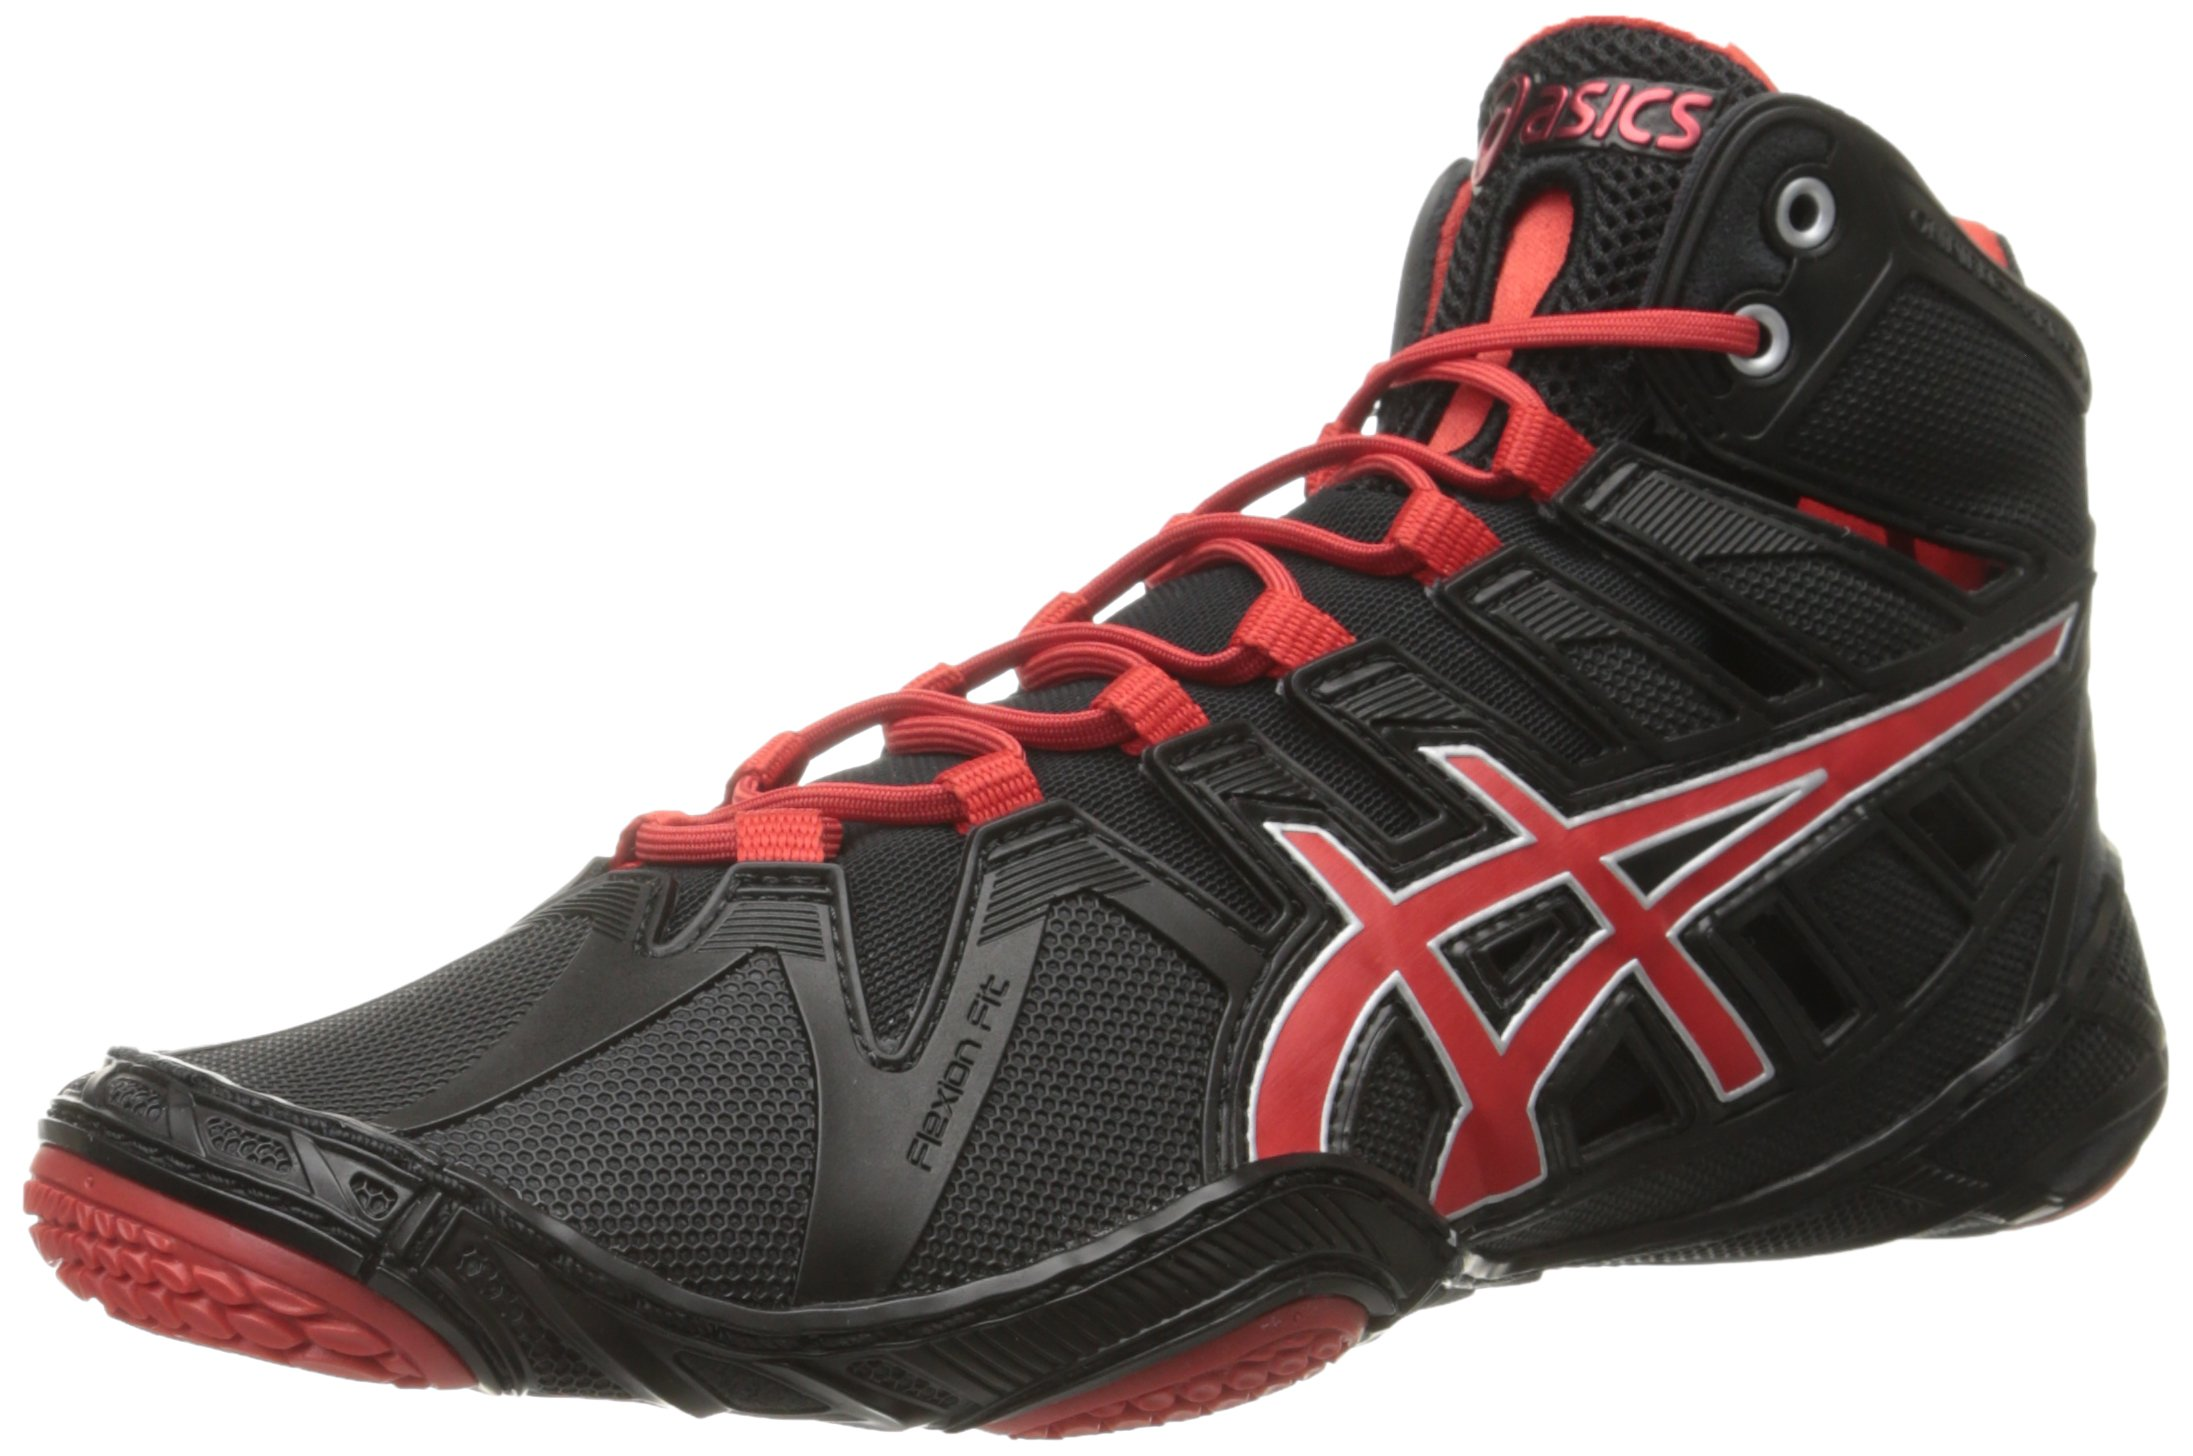 ASICS Men's Omniflex-Attack 2 Wrestling Shoe, Black/Pepper Red/Silver, 12.5 M US by ASICS